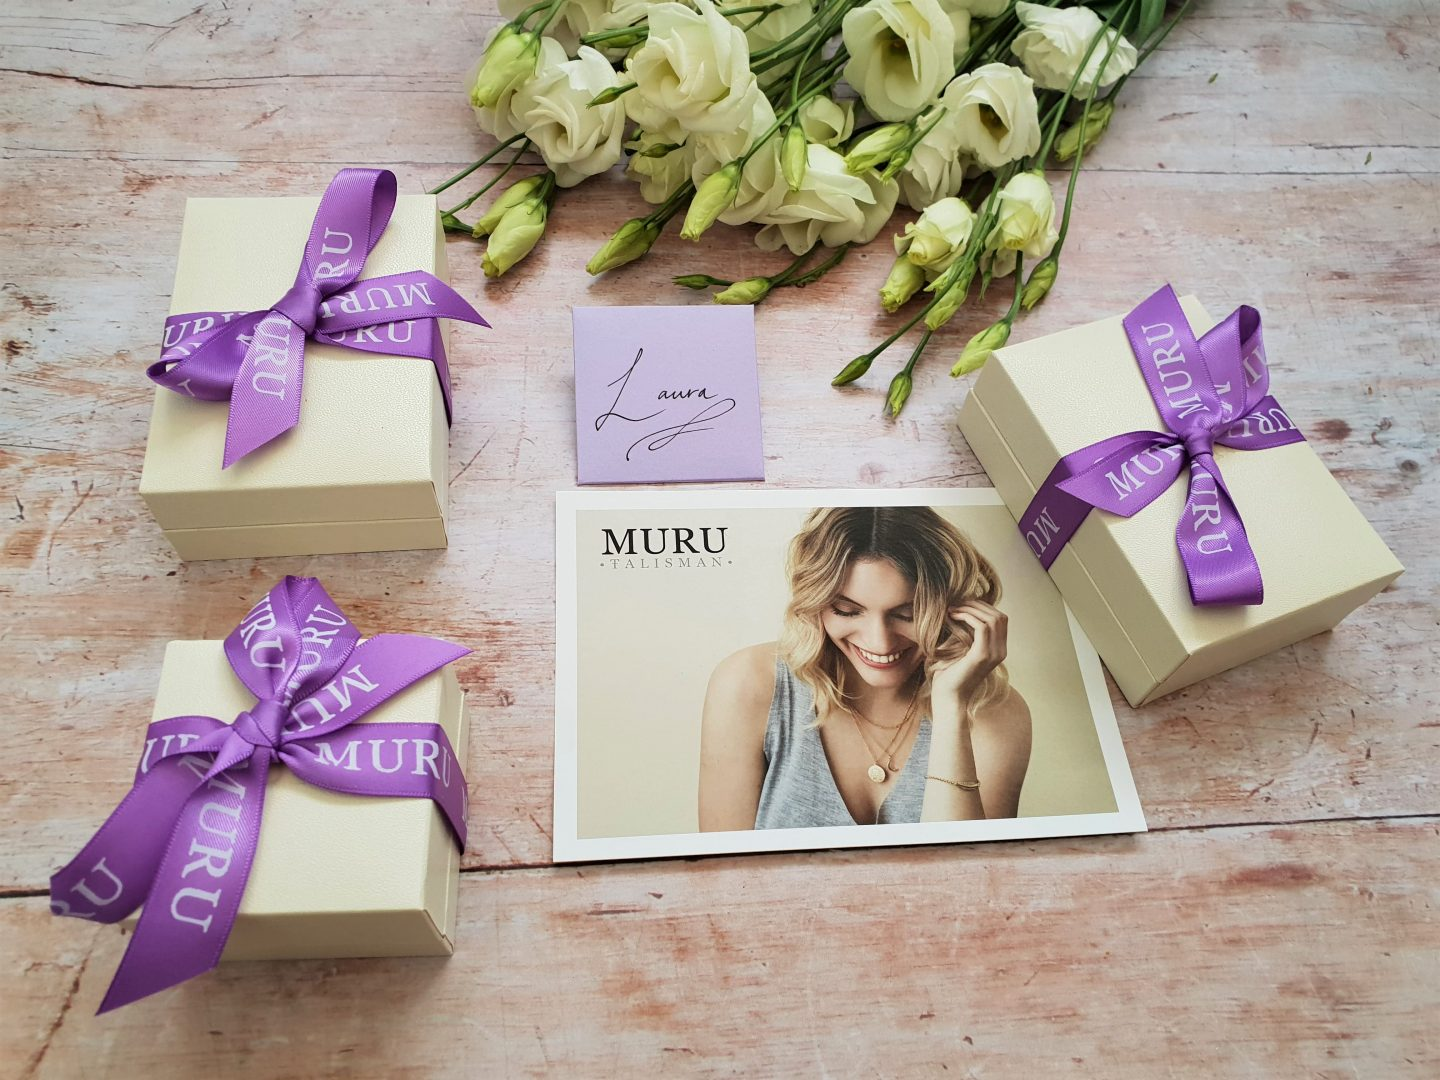 Muru jewellery gift boxes